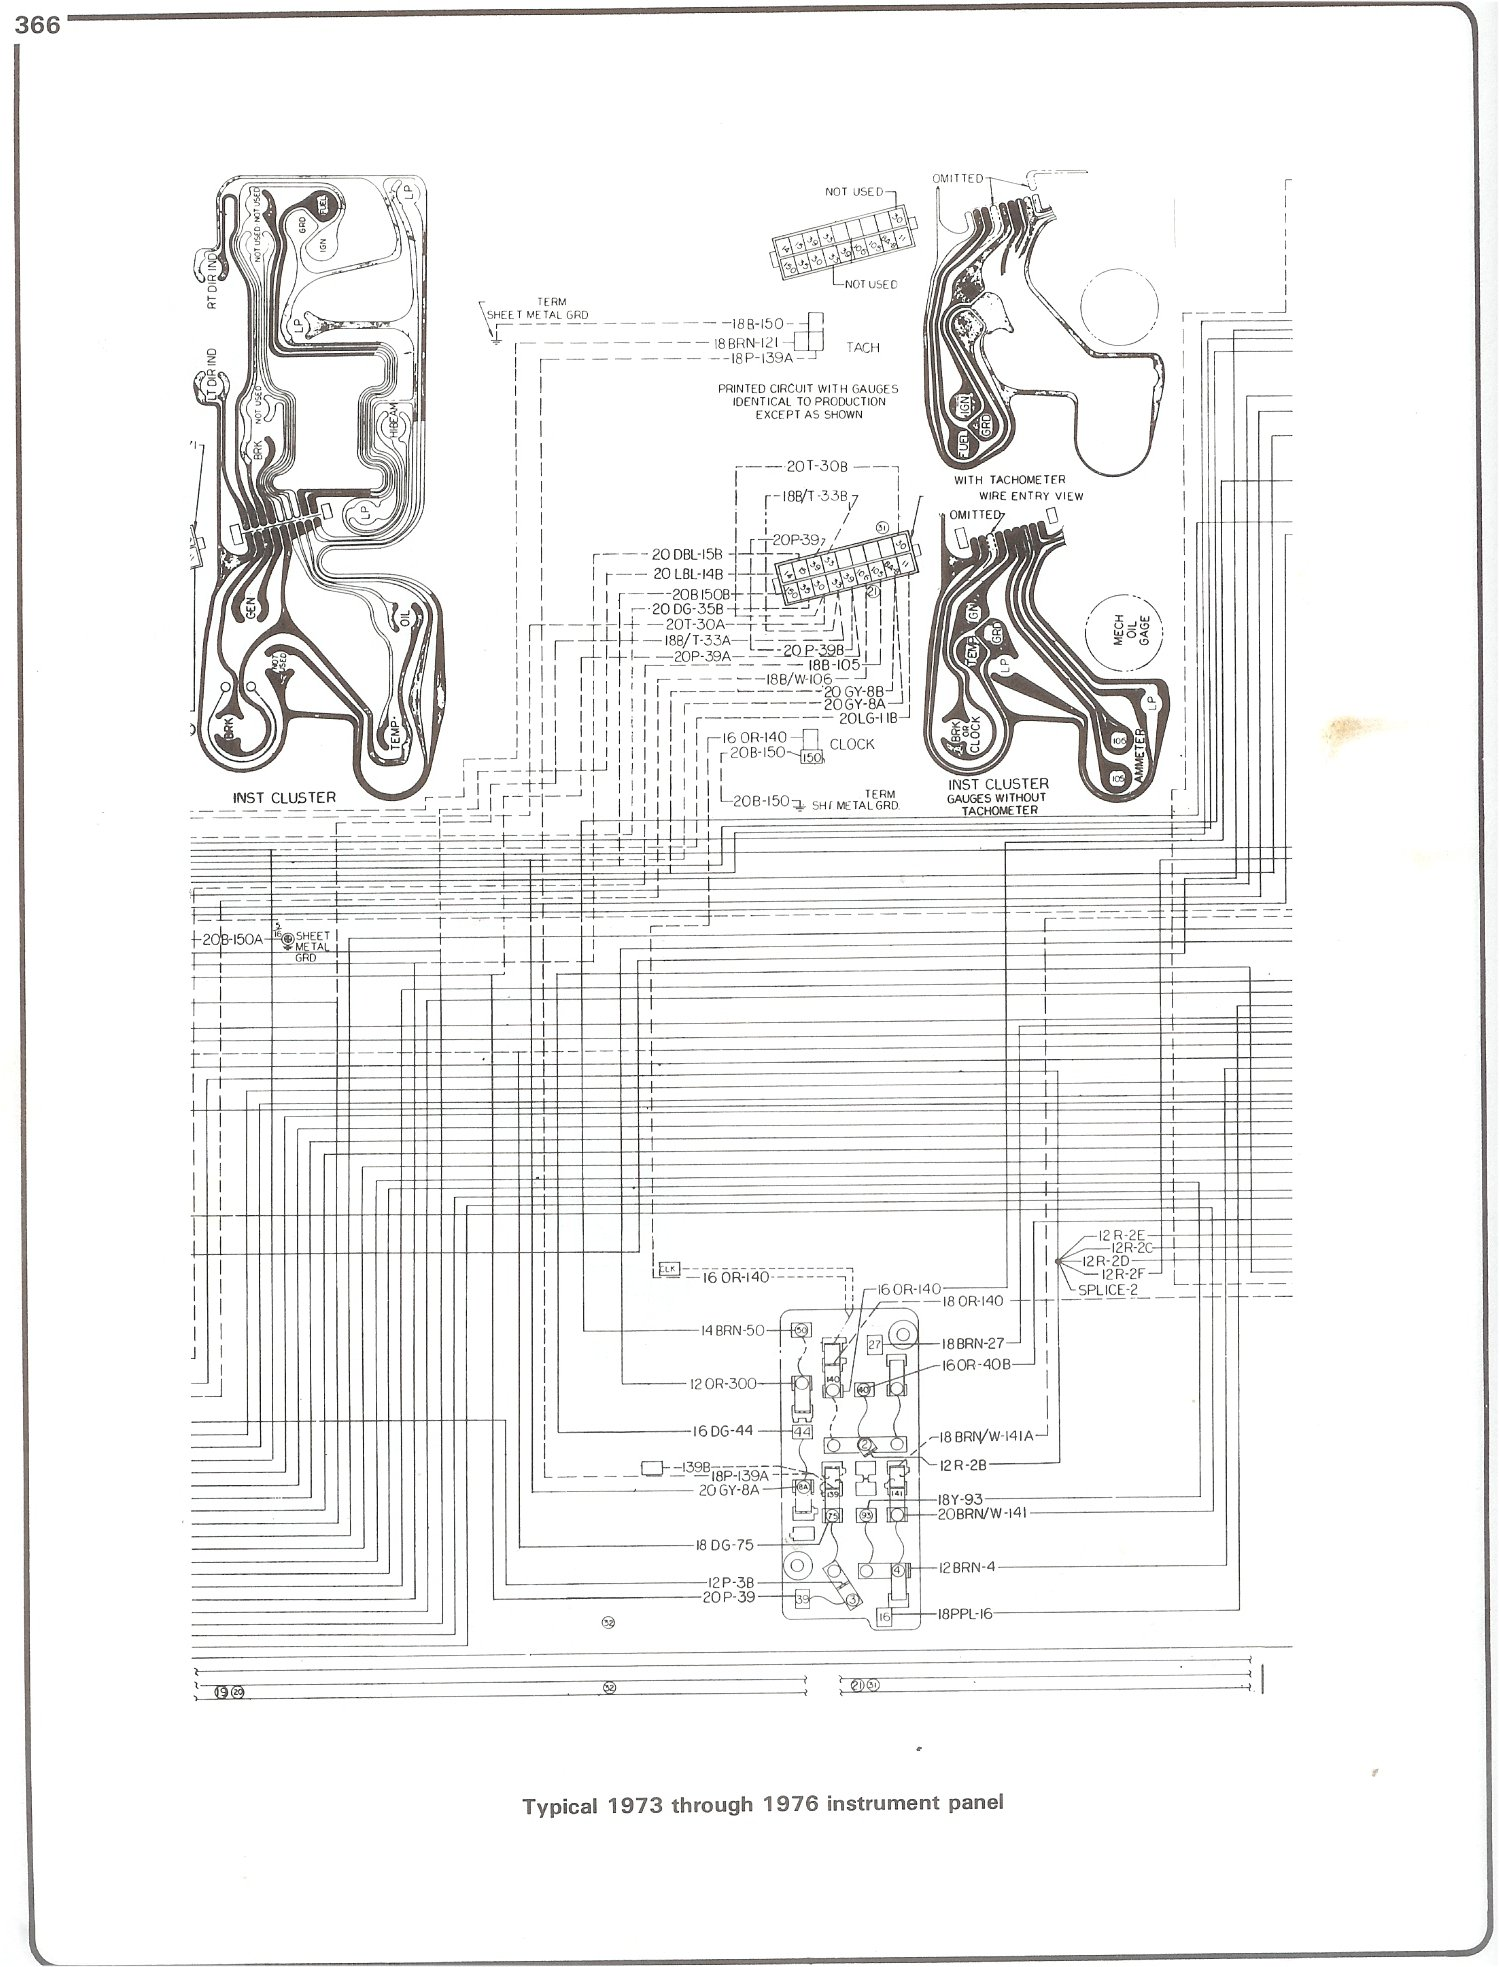 73 76_instrument complete 73 87 wiring diagrams 1968 Chevy C10 Wiring-Diagram at bayanpartner.co